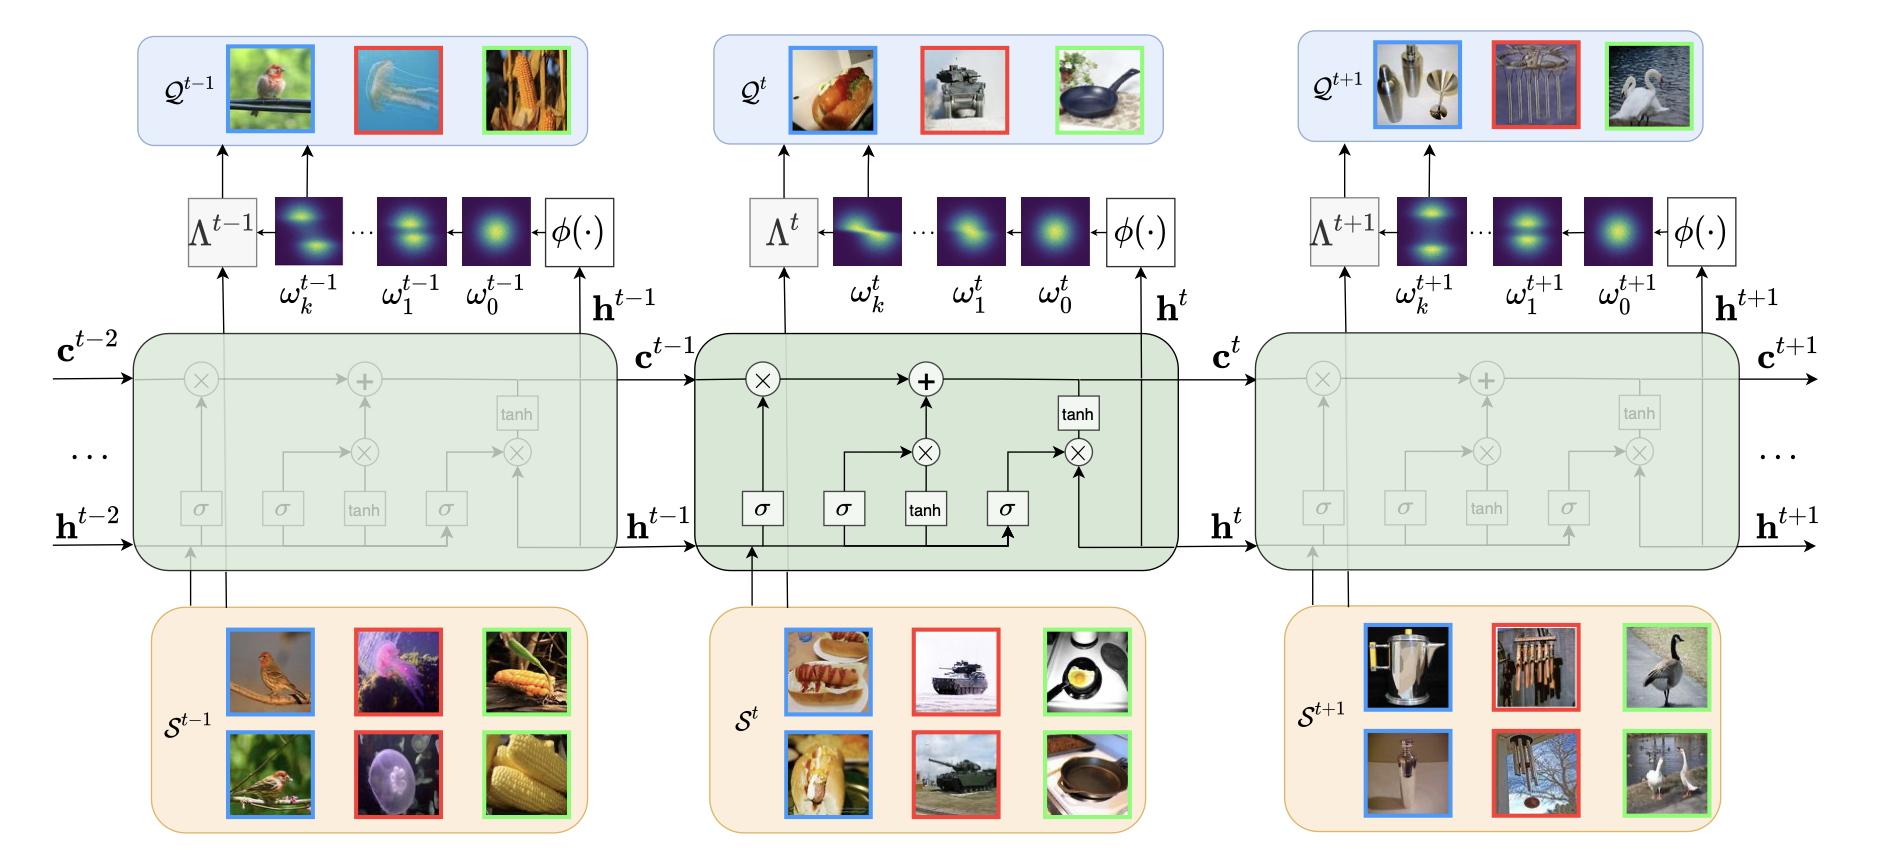 MetaKernel: Learning Variational Random Features with Limited Labels